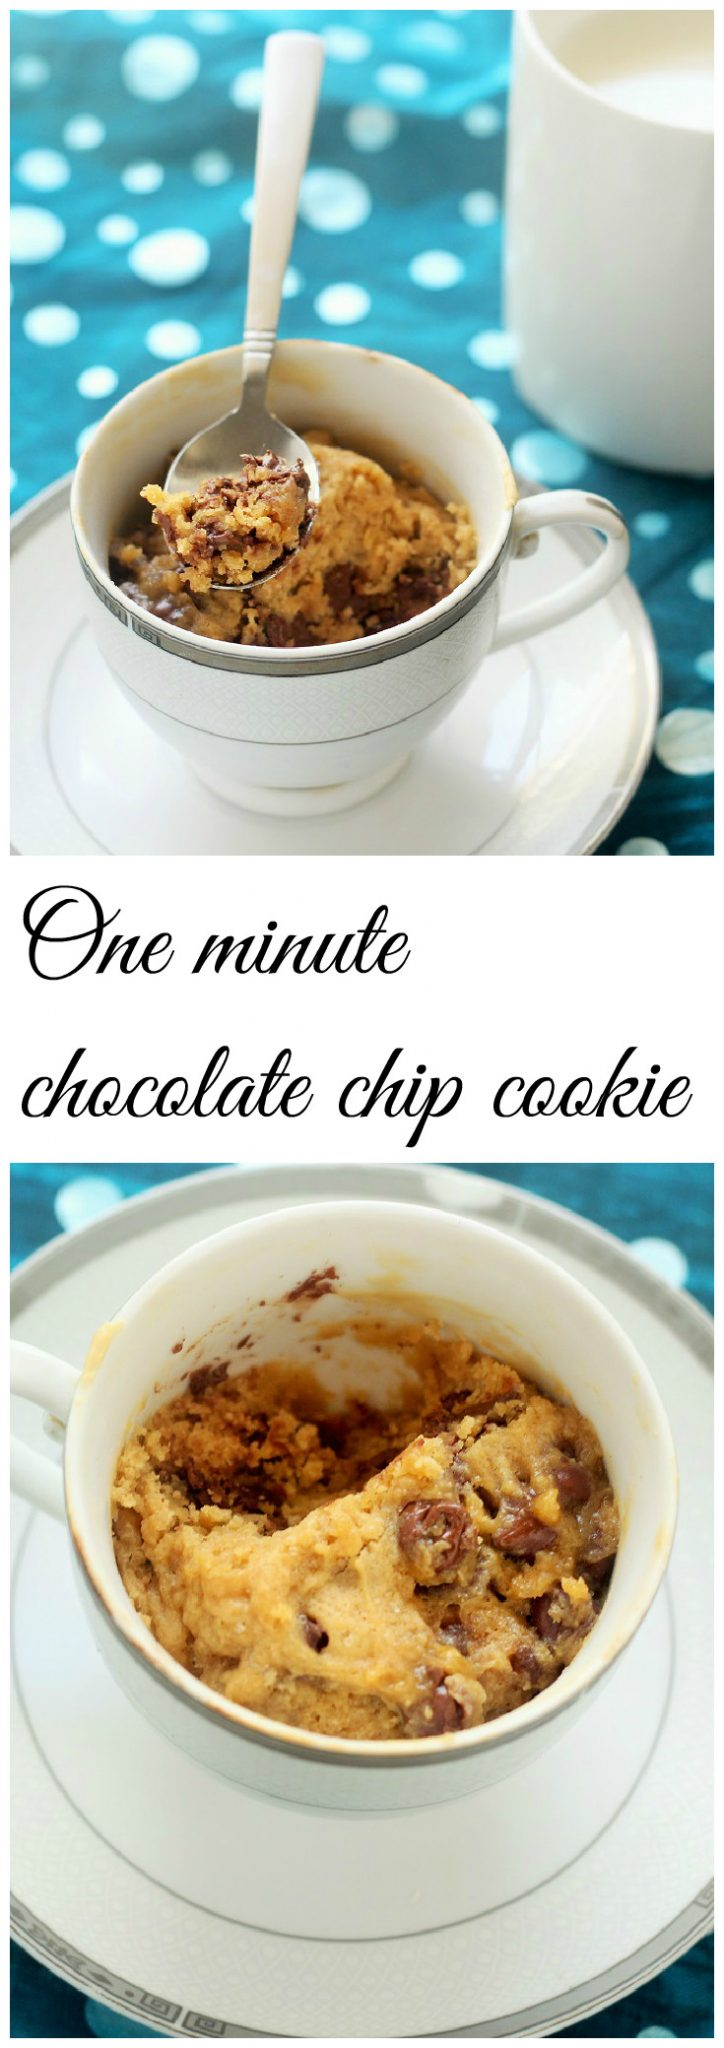 chocolate chip cookie pin